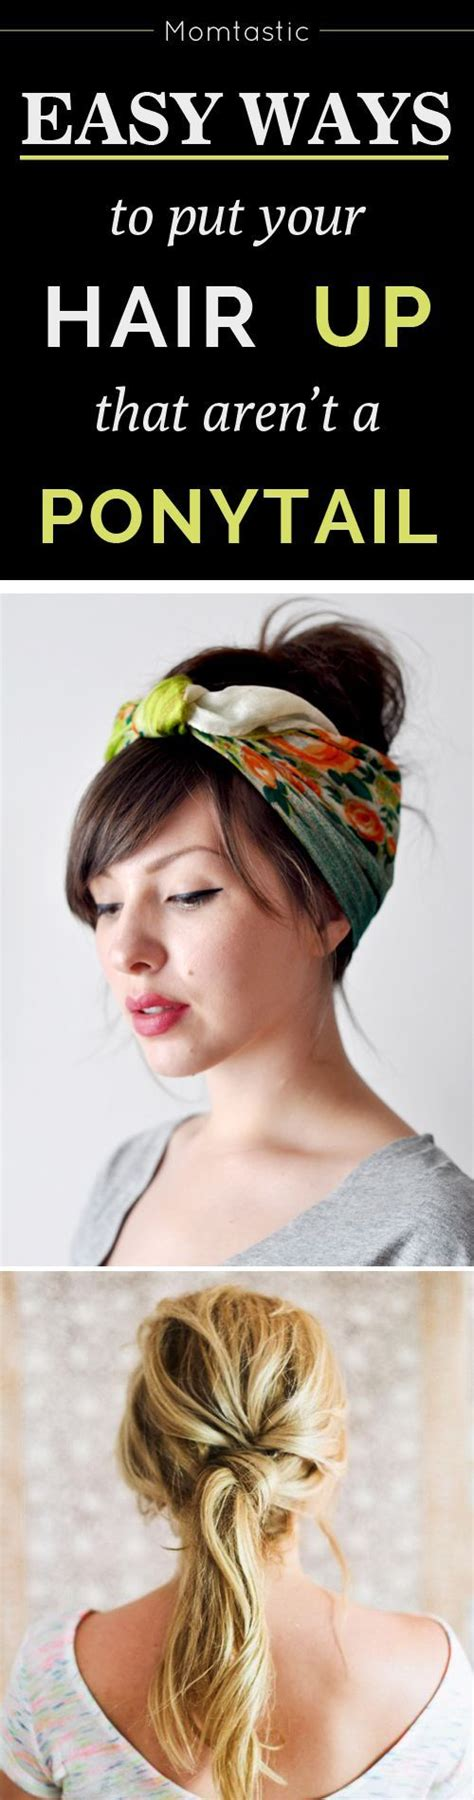 cute hairstyles to put your hair up 31 easy ways to put your hair up beyond a basic ponytail